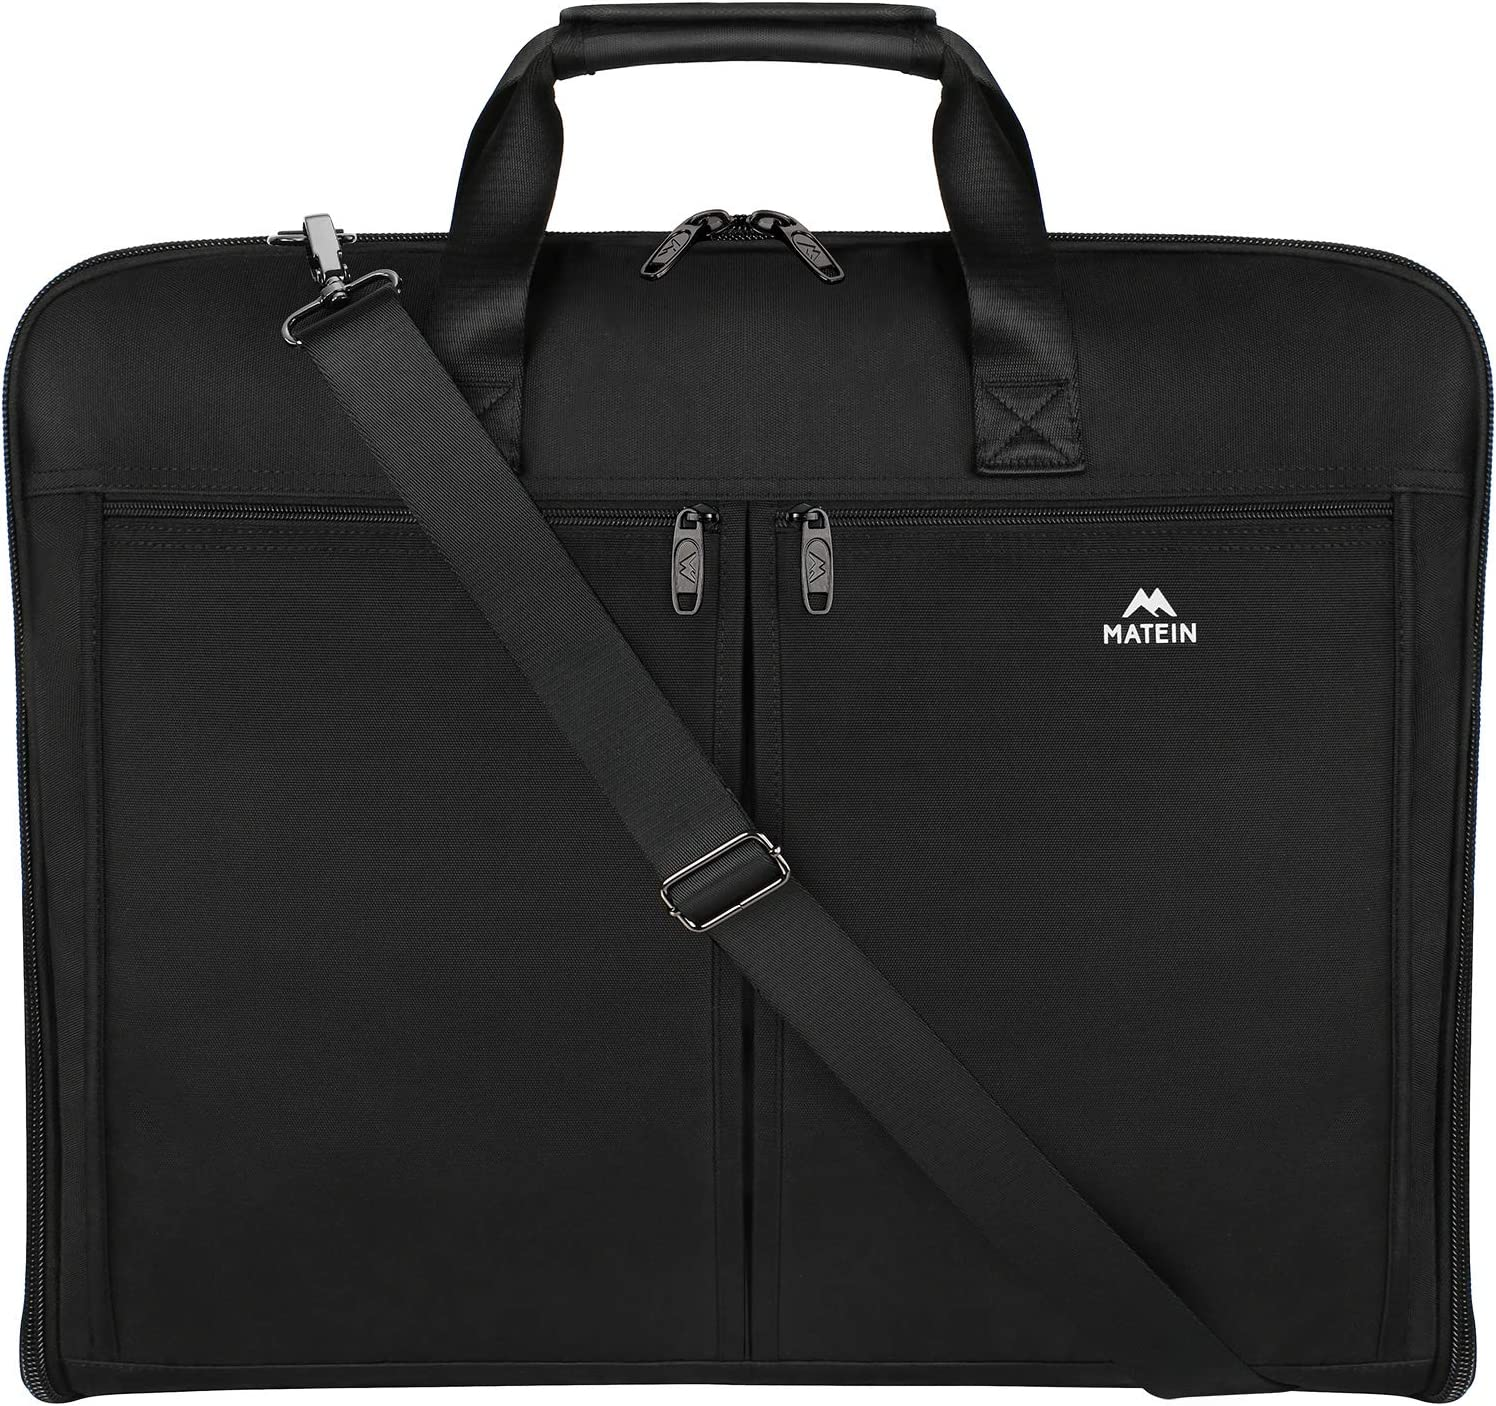 Matein Travel Garment Bag, Carry On Garment Bags for Men Women, 2 in 1 Luggage Suit Bags for Business Trip, Slim Hanging Suitcase for Dress, Suits, Black